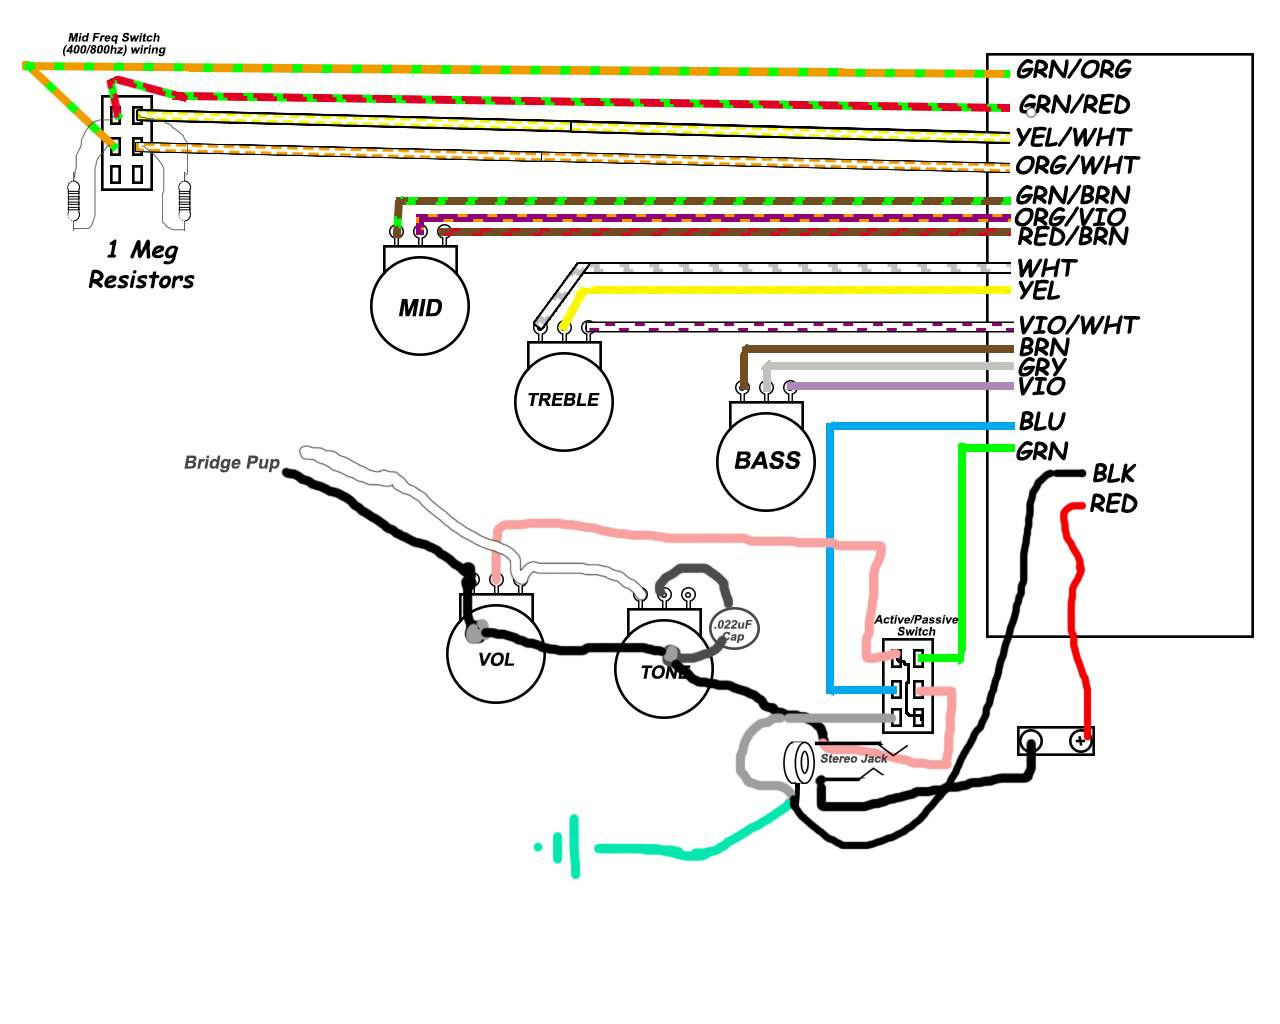 grandaire heat pump wiring diagram grandaire wiring diagrams fender blacktop wiring diagram